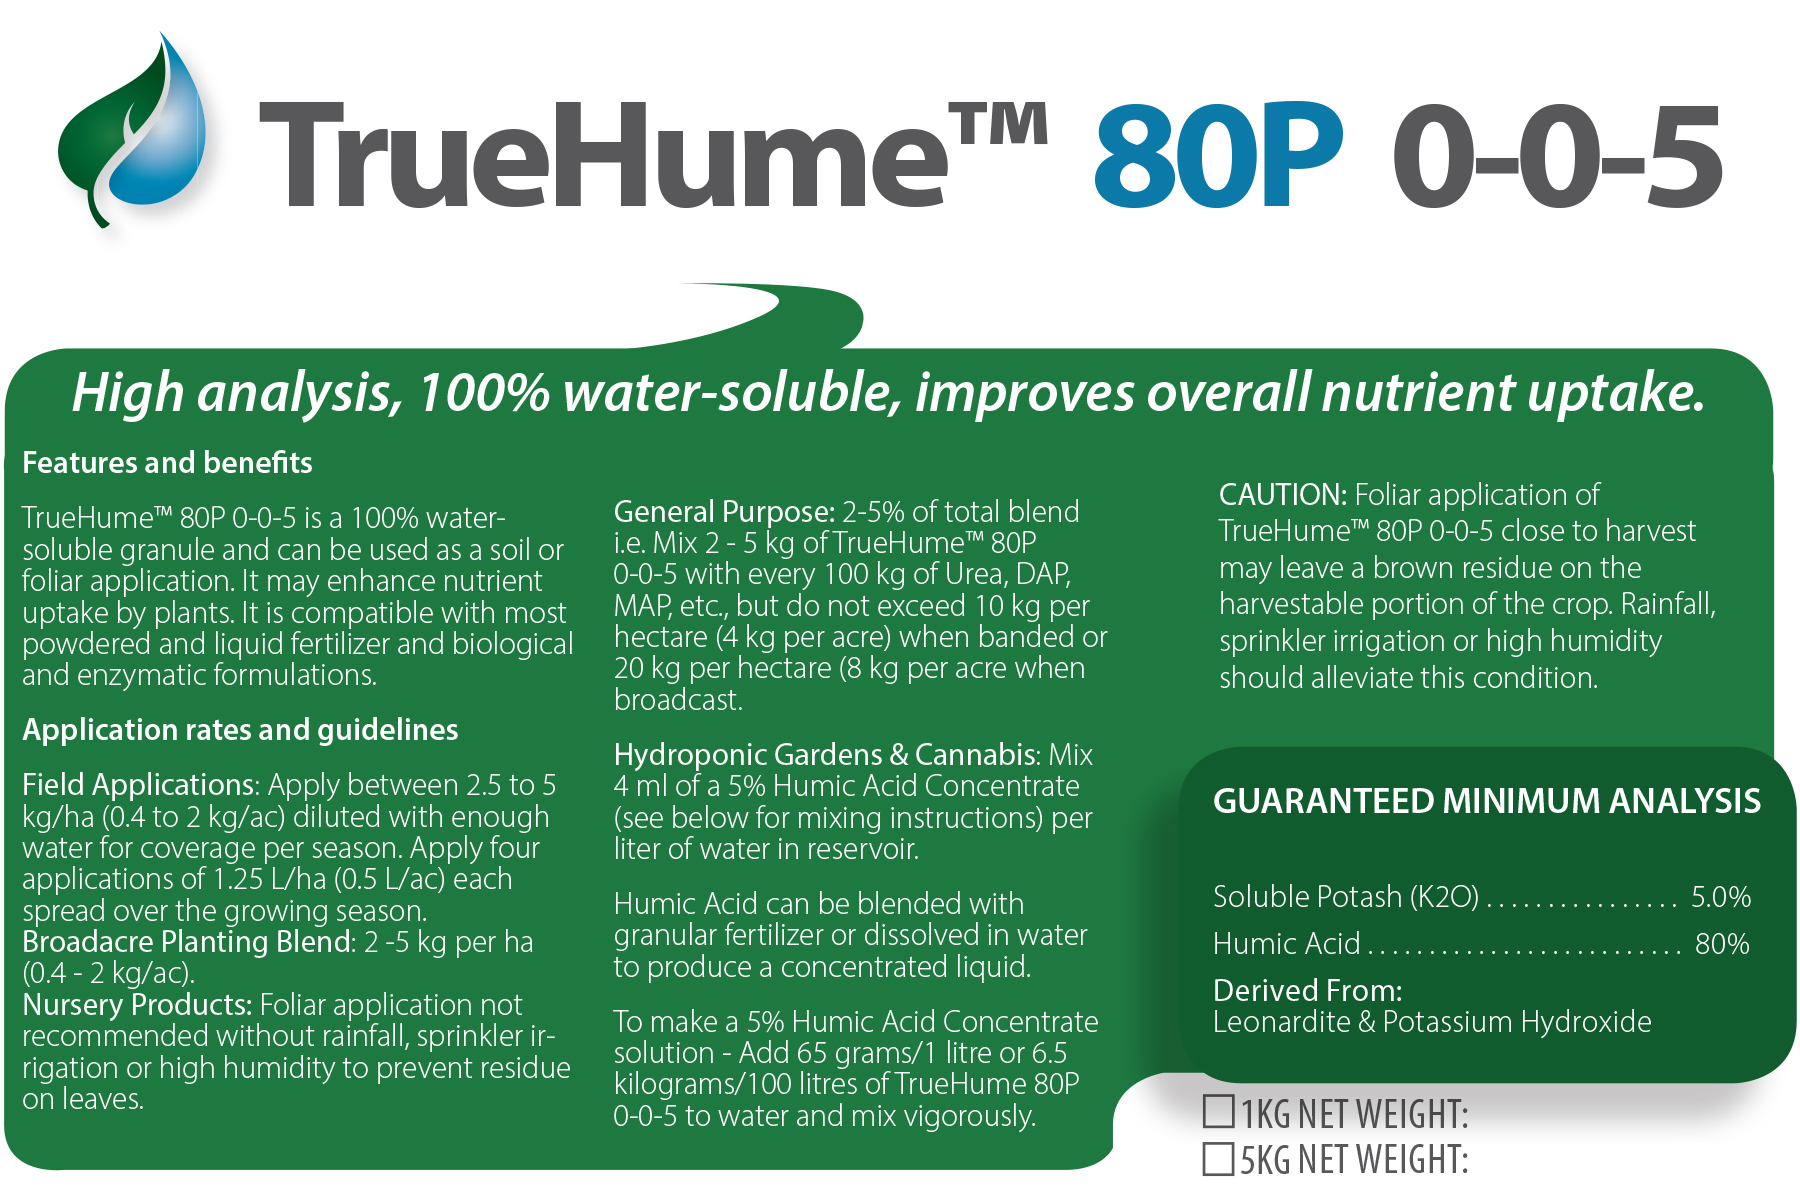 TrueHume 80P Soluble Humate Powder